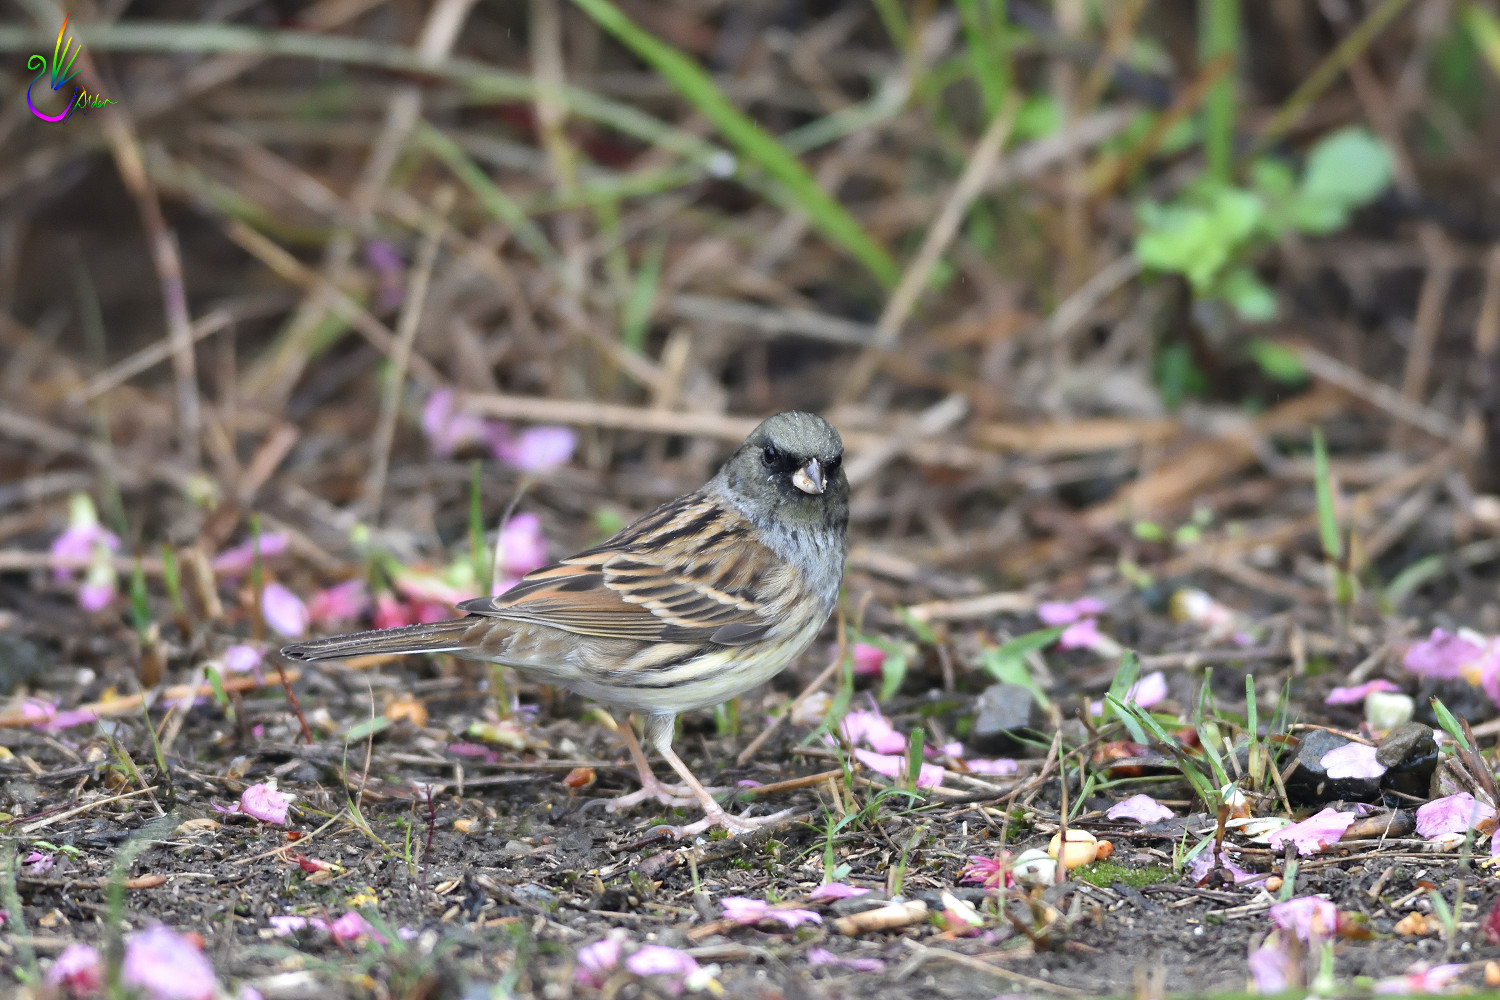 Black-faced_Bunting_7510